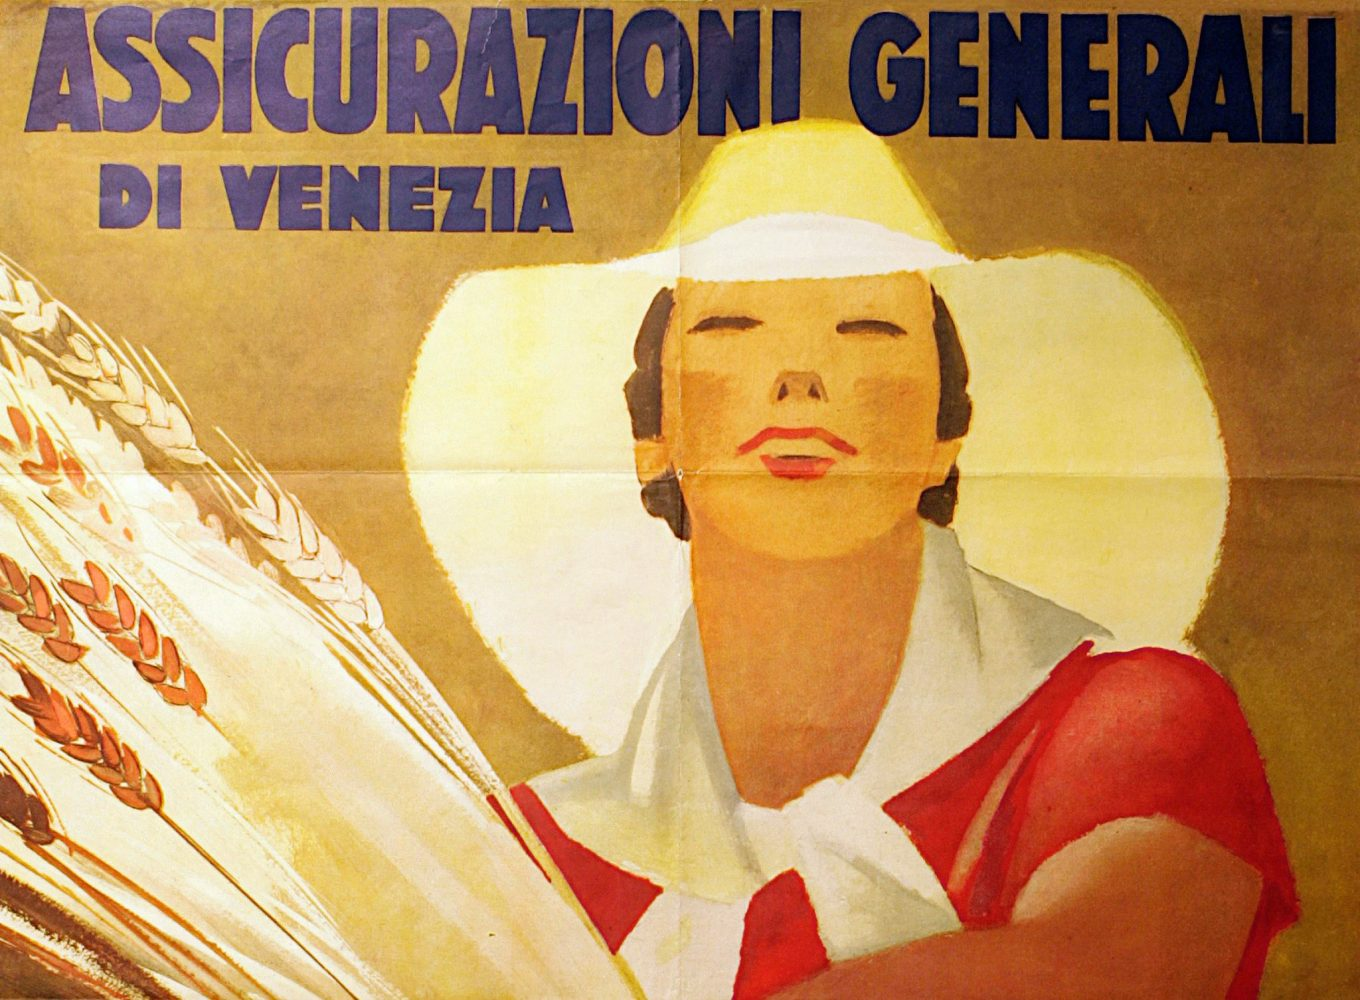 Marcello Dudovich, Assicurazioni Generali Venezia advertising poster (1938), detail